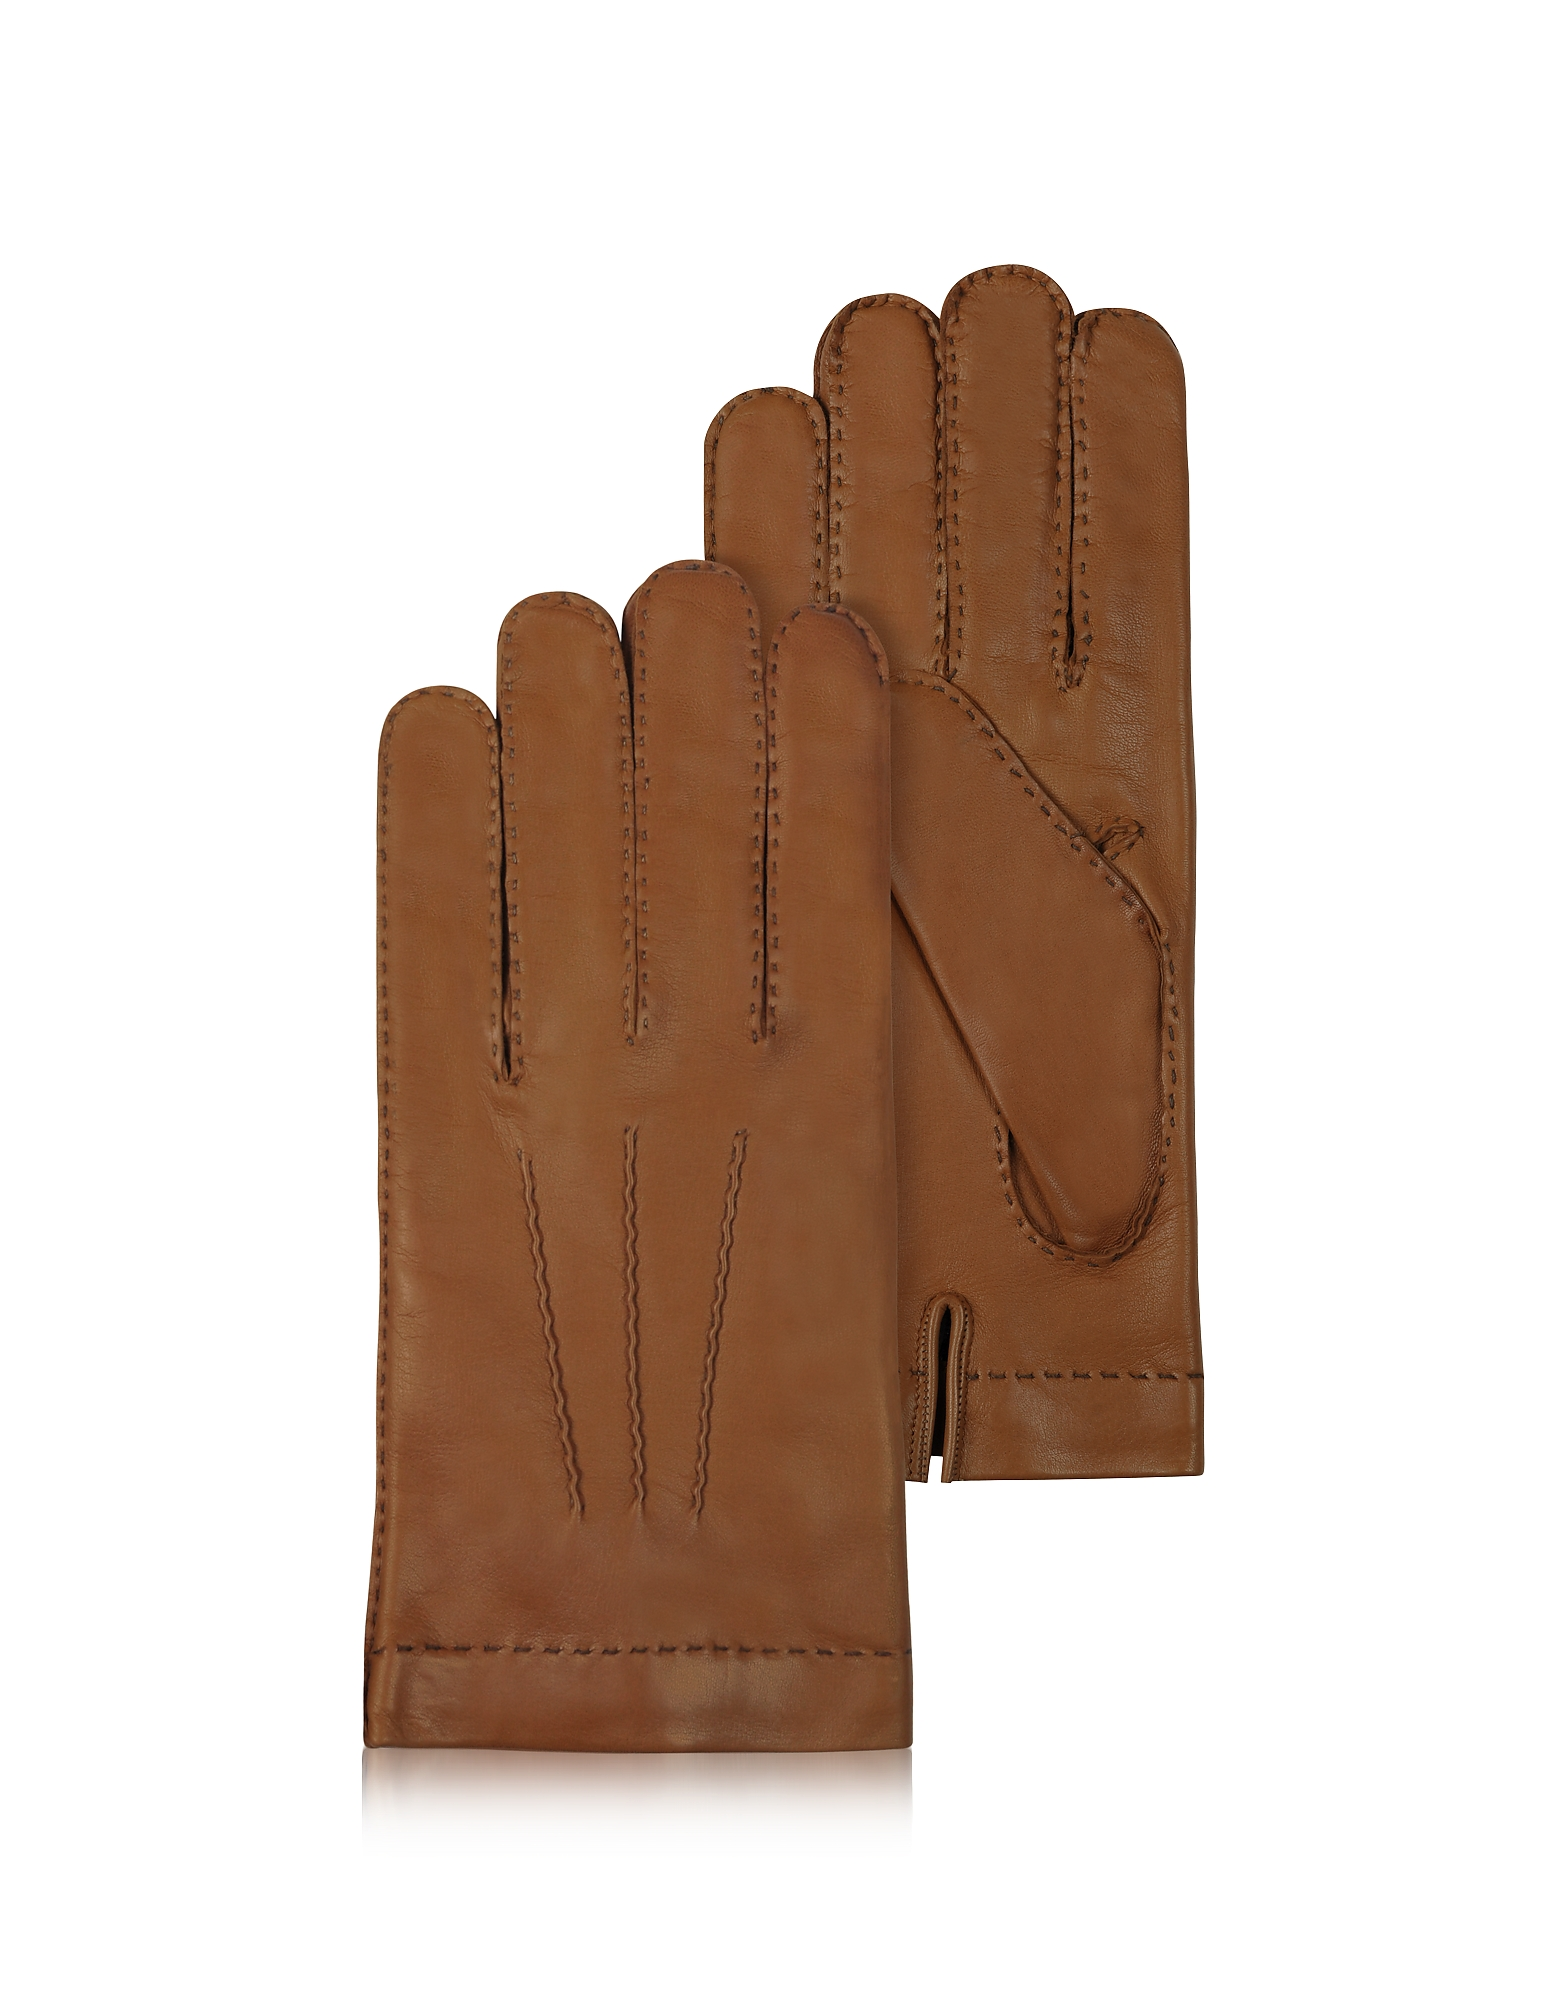 Forzieri Men's Gloves, Men's Cashmere Lined Brown Italian Leather Gloves